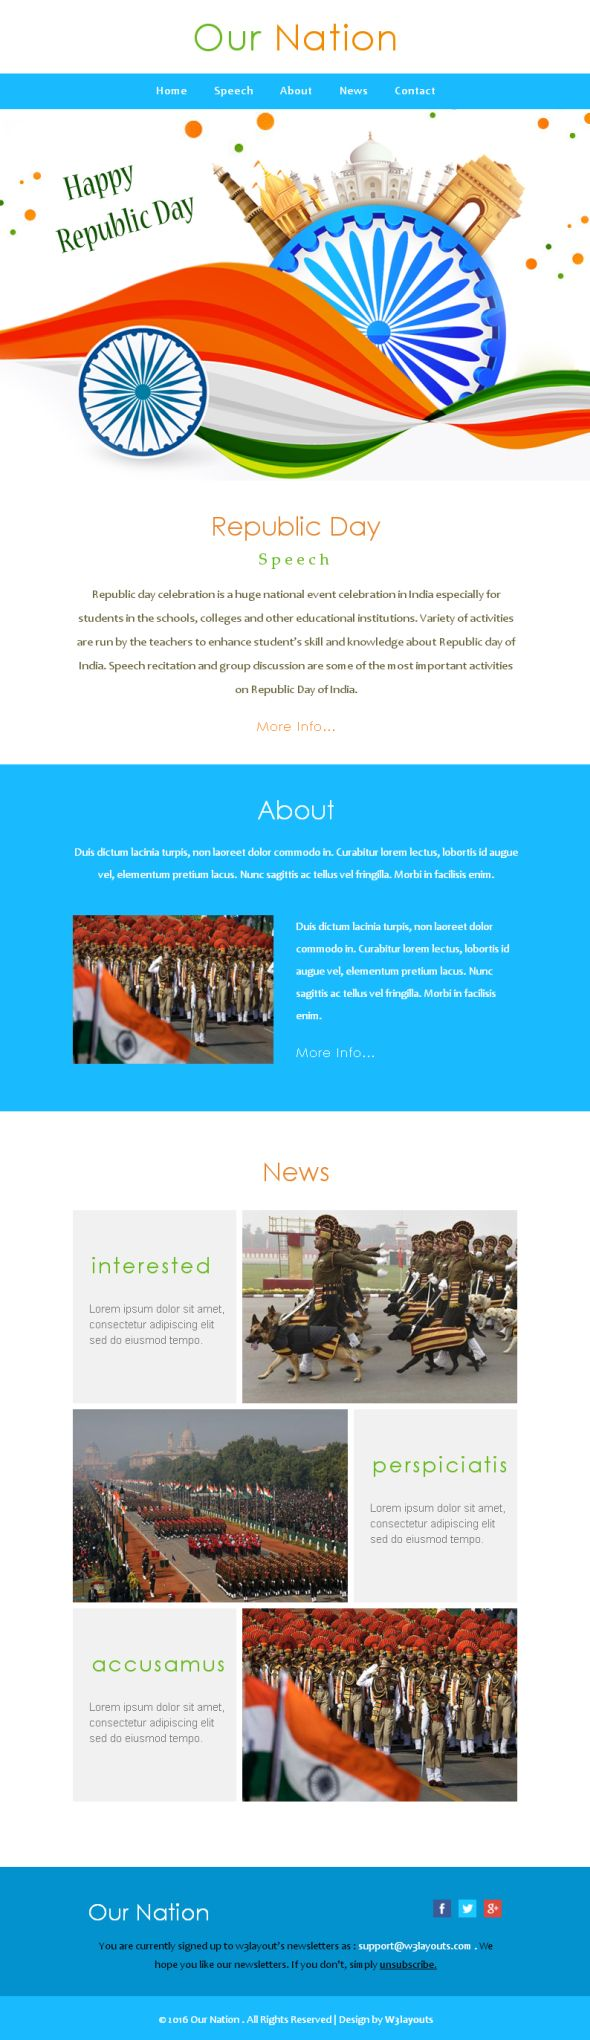 ournation-newsletter-template